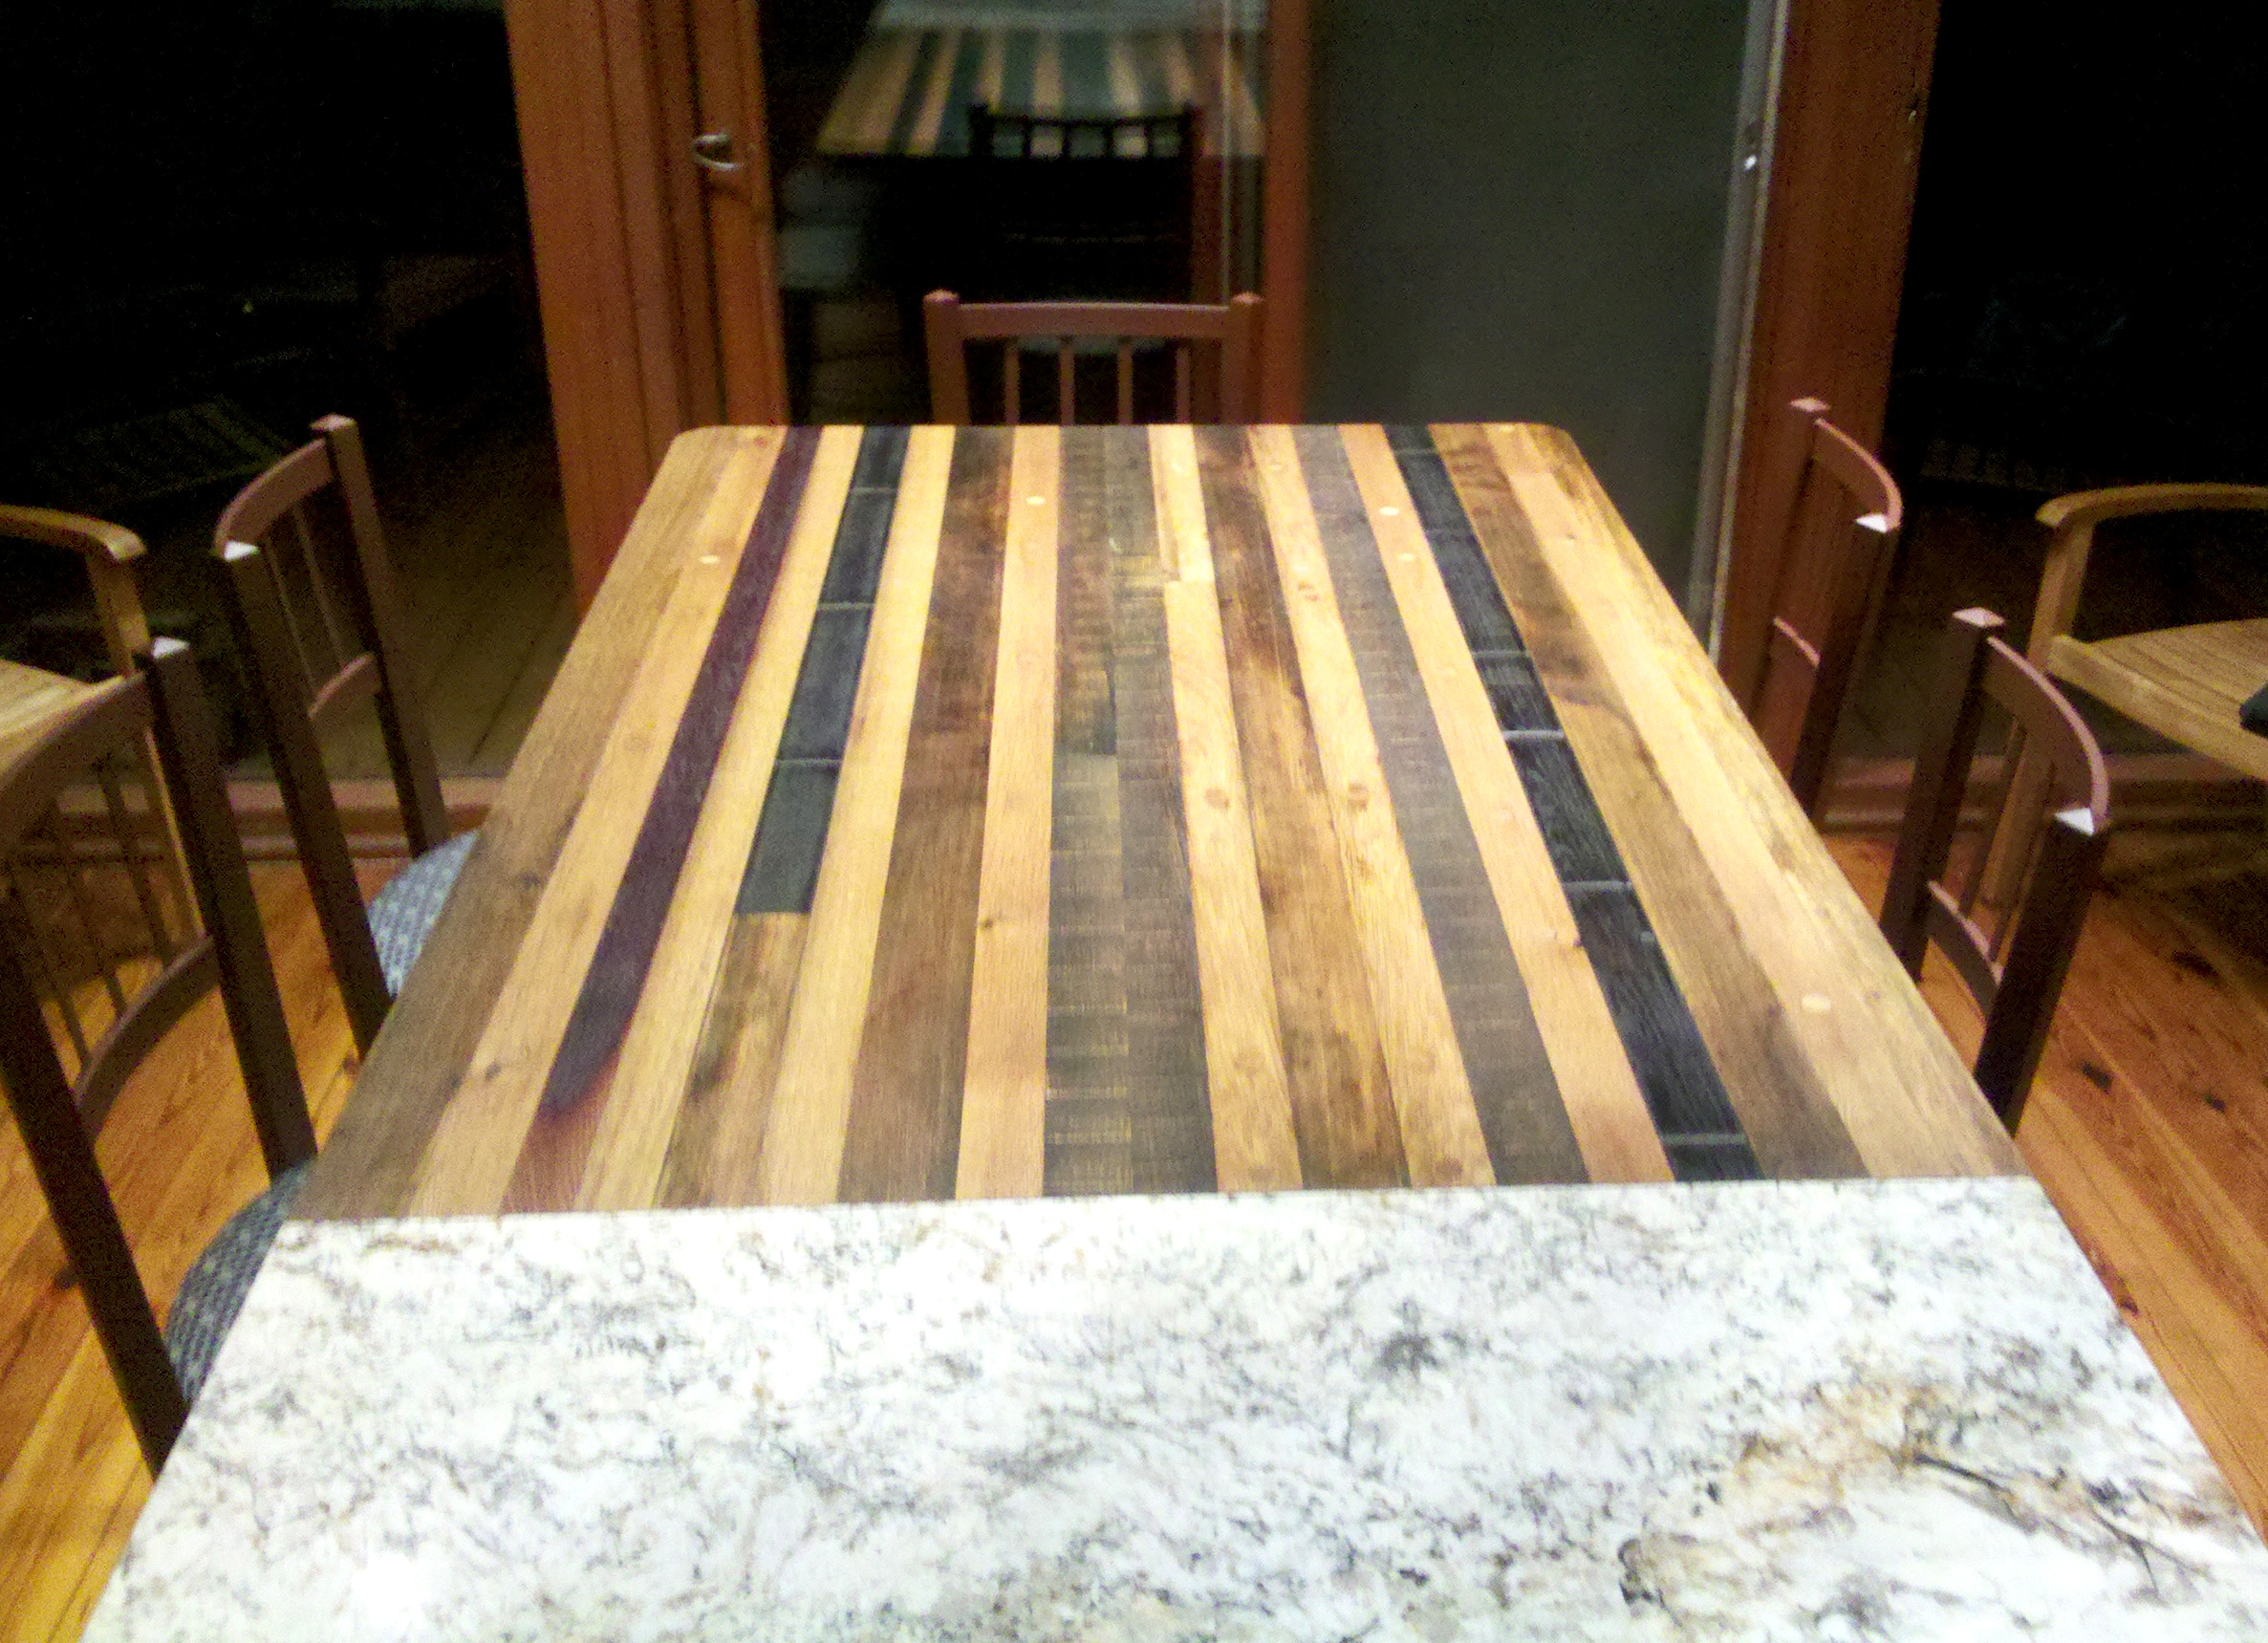 Old French white oak and domestic barrel/vat staves were repurposed into a pier table off the kitchen island, ideally situated for family meals.